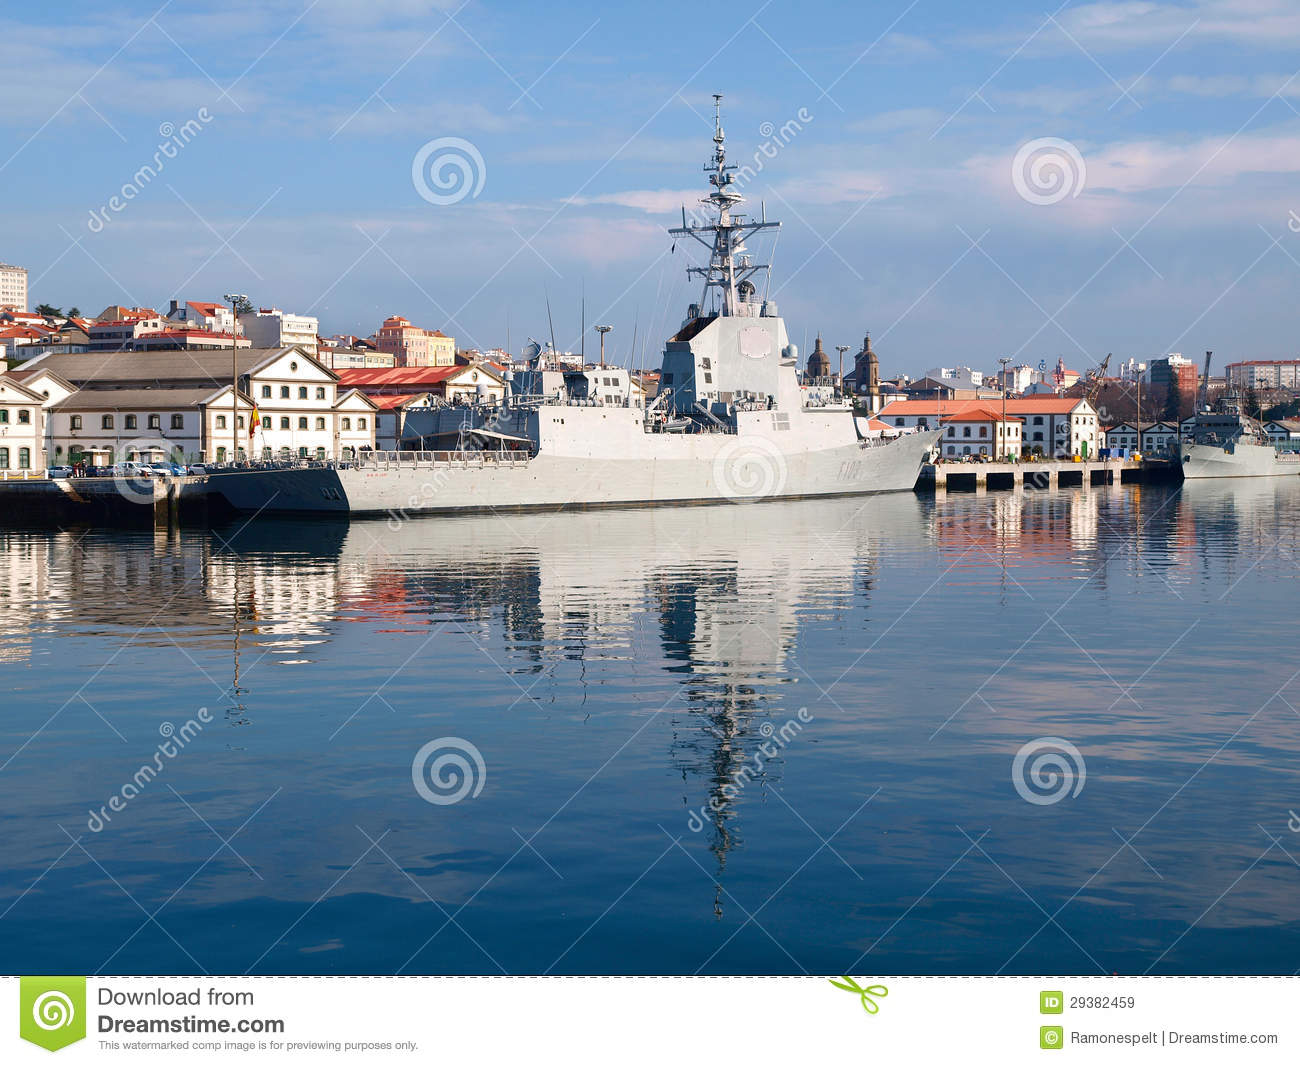 Ferrol Spain  city pictures gallery : ... Ferrol, Spain, on February 16, 2013. Blas de Lezo is a spanish warship